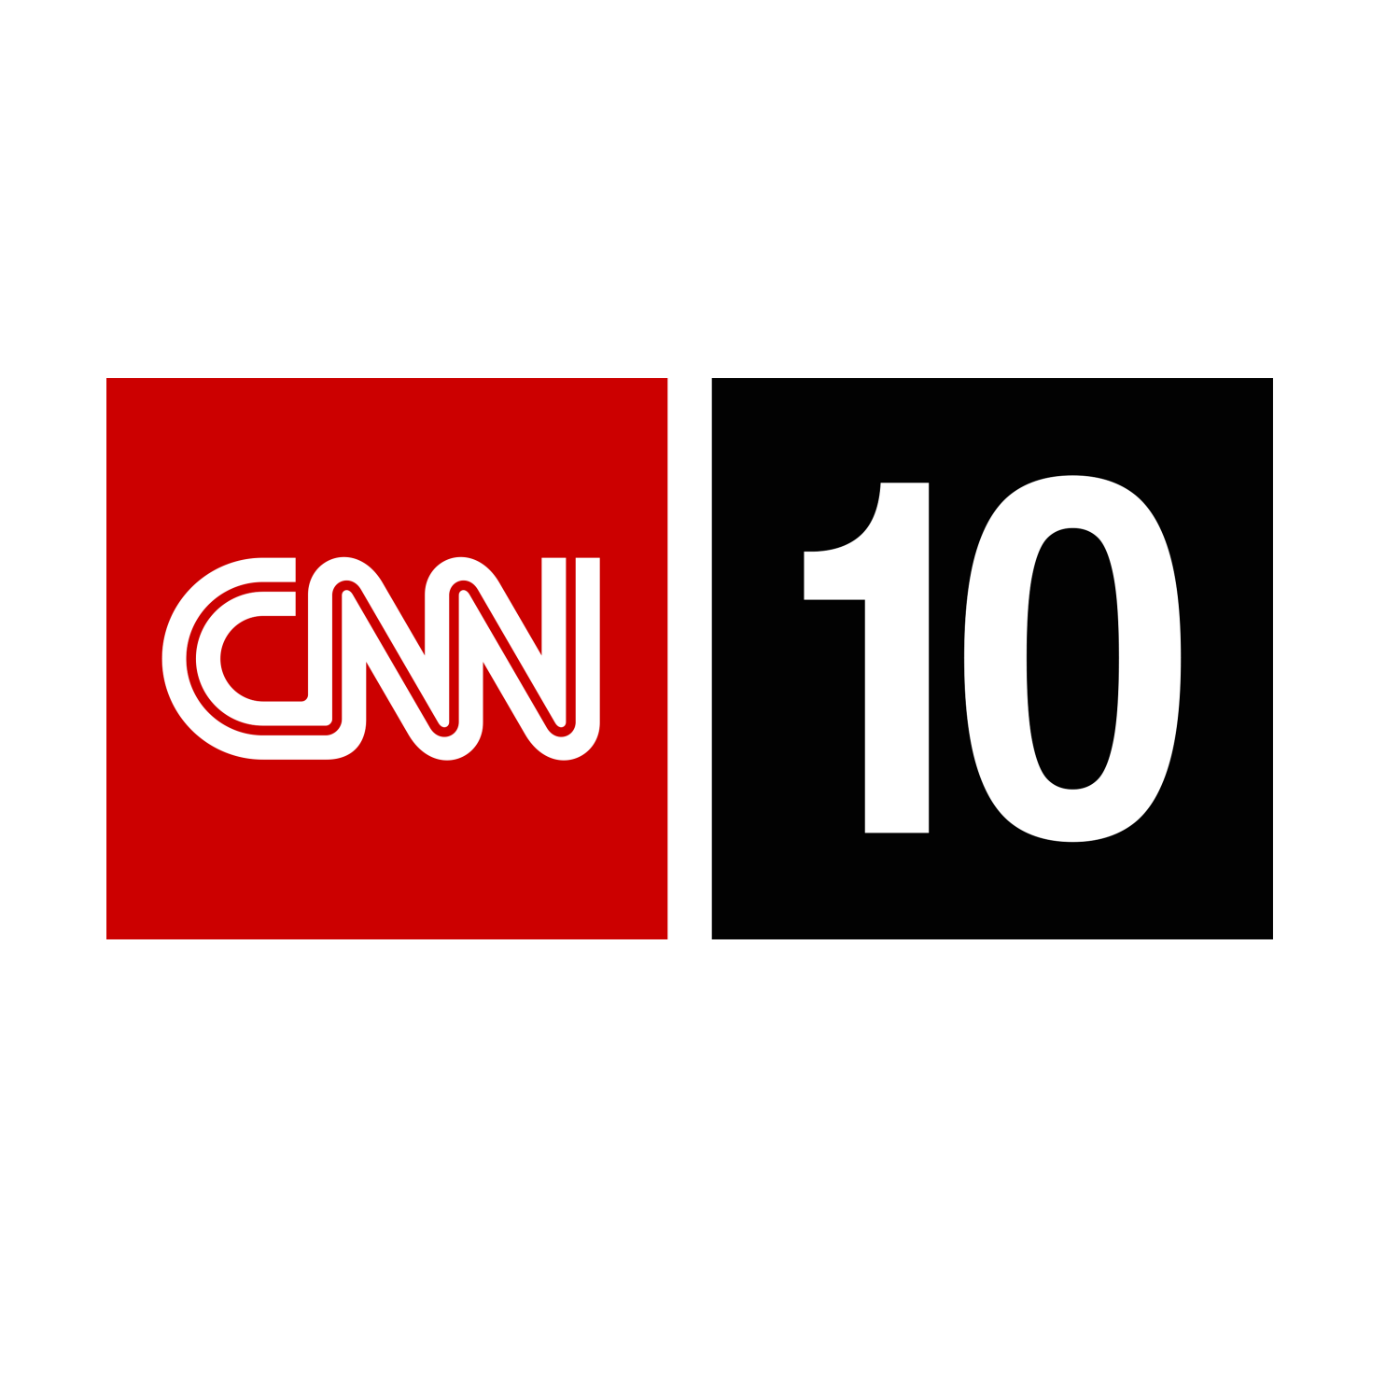 CNN Student News - September 24, 2012